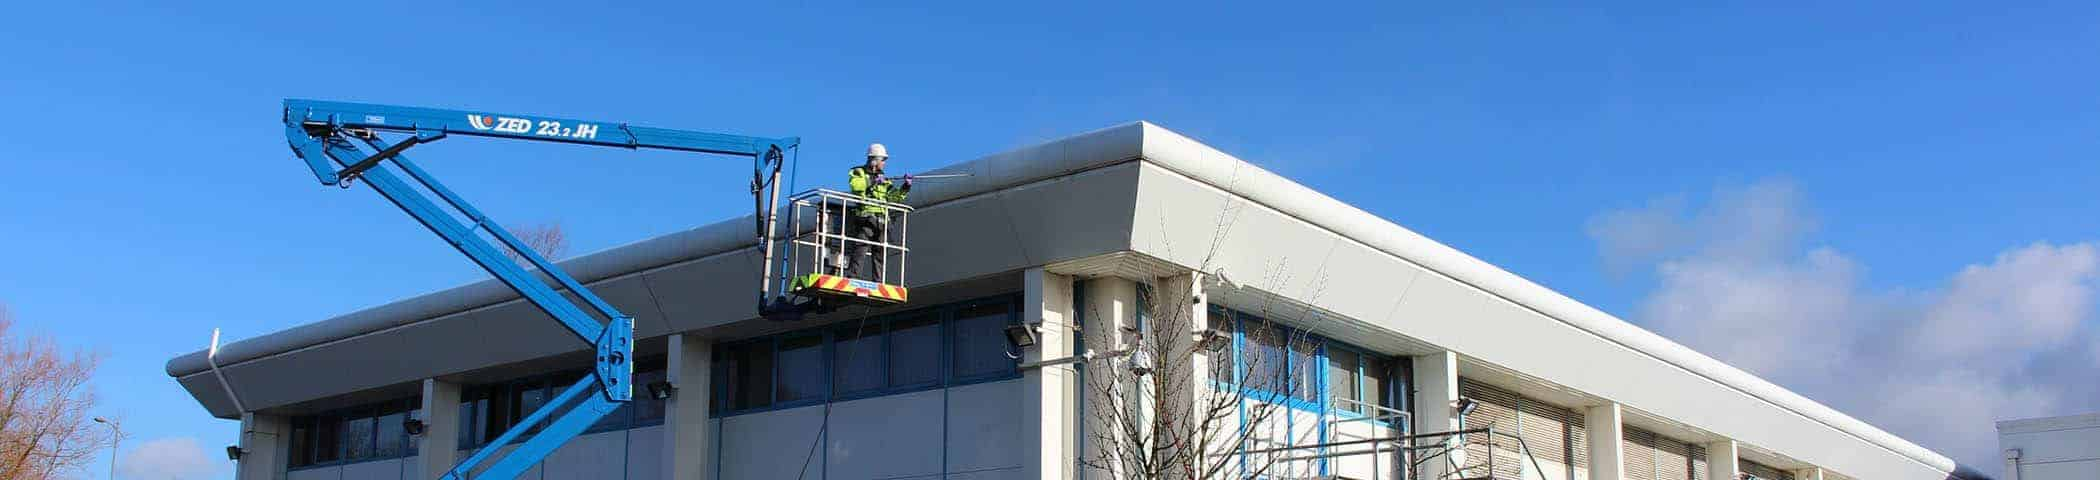 Cladding Cleaning Services header